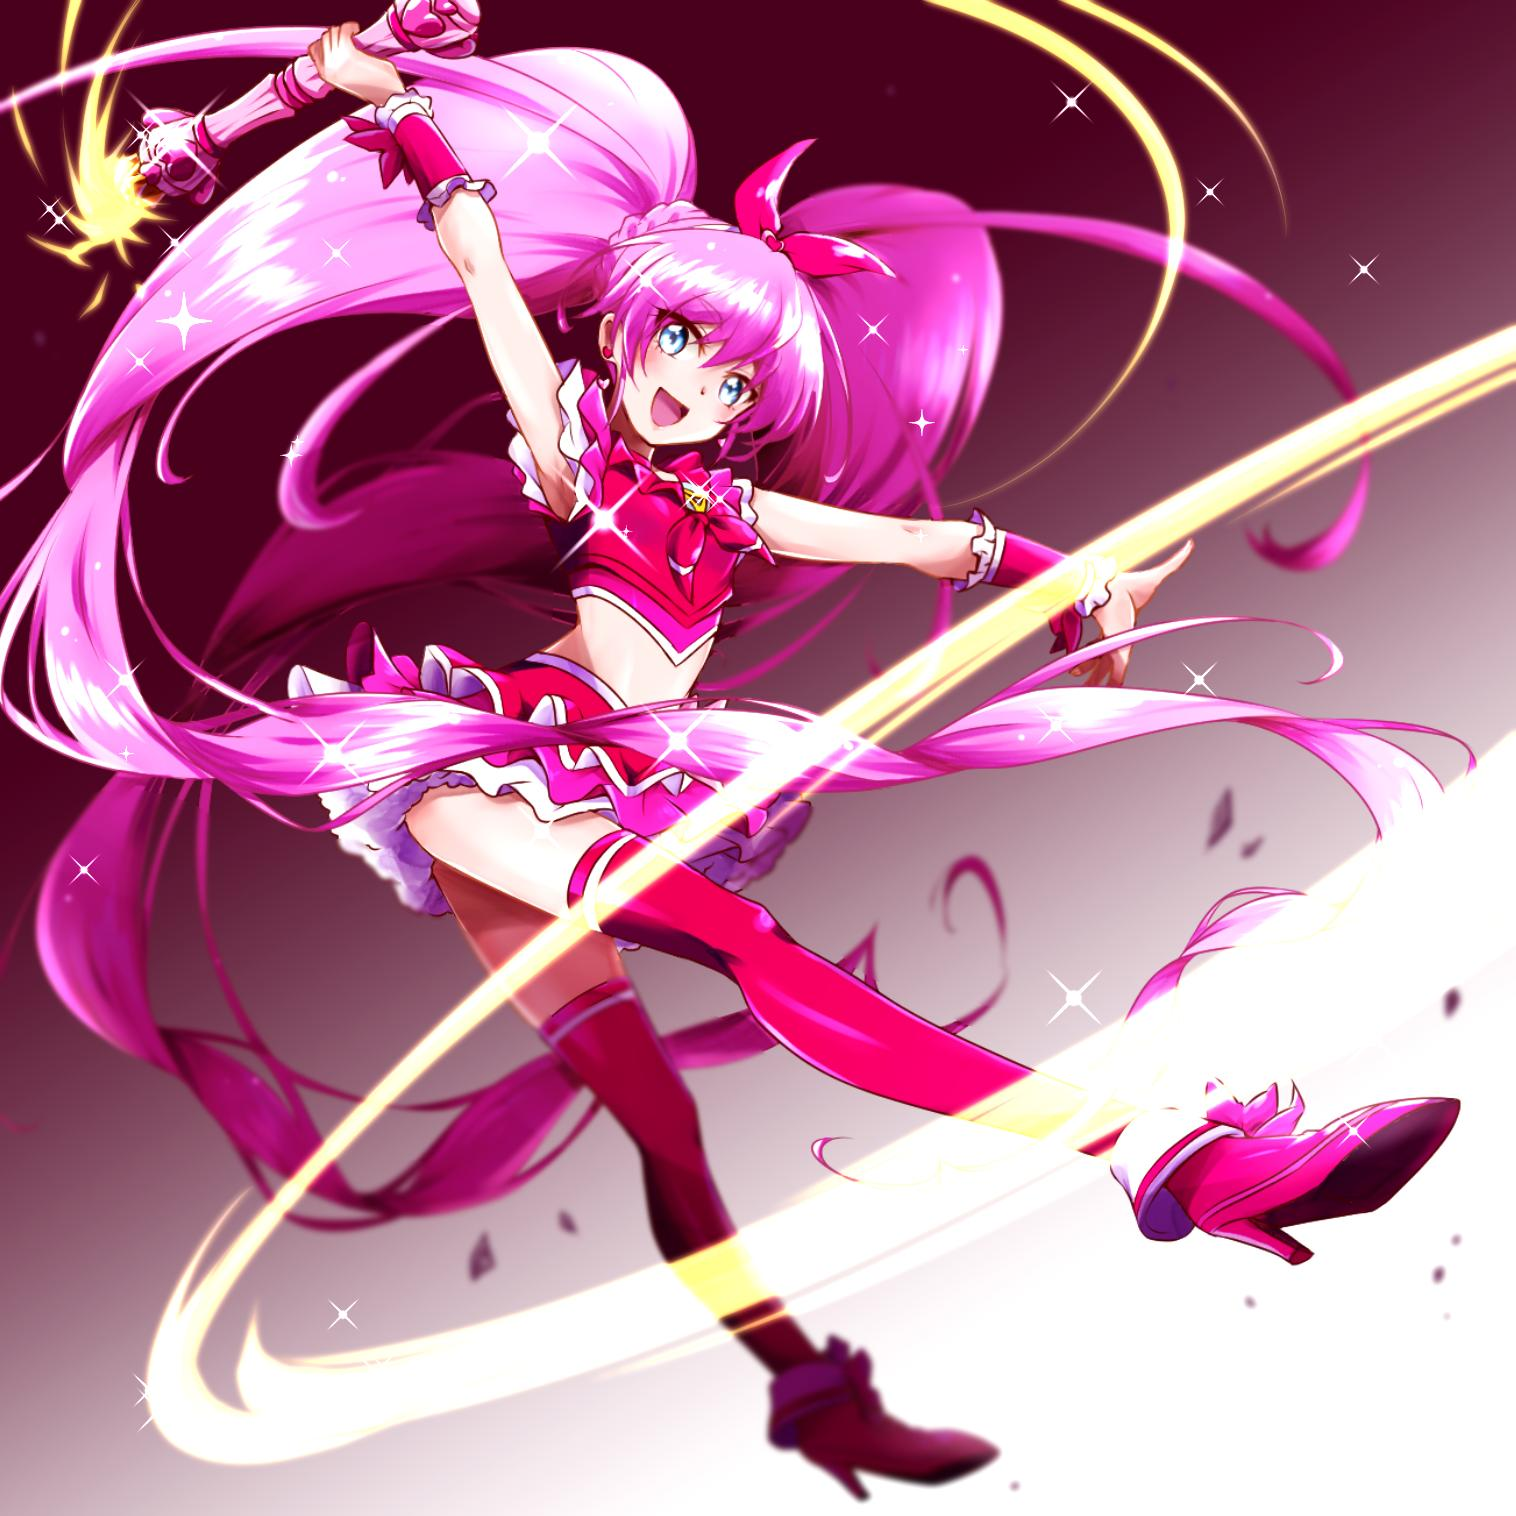 1girl armpits blue_eyes bow choker commentary crop_top cure_melody earrings full_body gradient gradient_background heart high_heels highres holding holding_wand houjou_hibiki jewelry long_hair looking_at_viewer magical_girl miniskirt niita open_mouth pink_bow pink_choker pink_hair pink_legwear precure skirt sleeveless smile stud_earrings suite_precure thigh-highs twintails wand